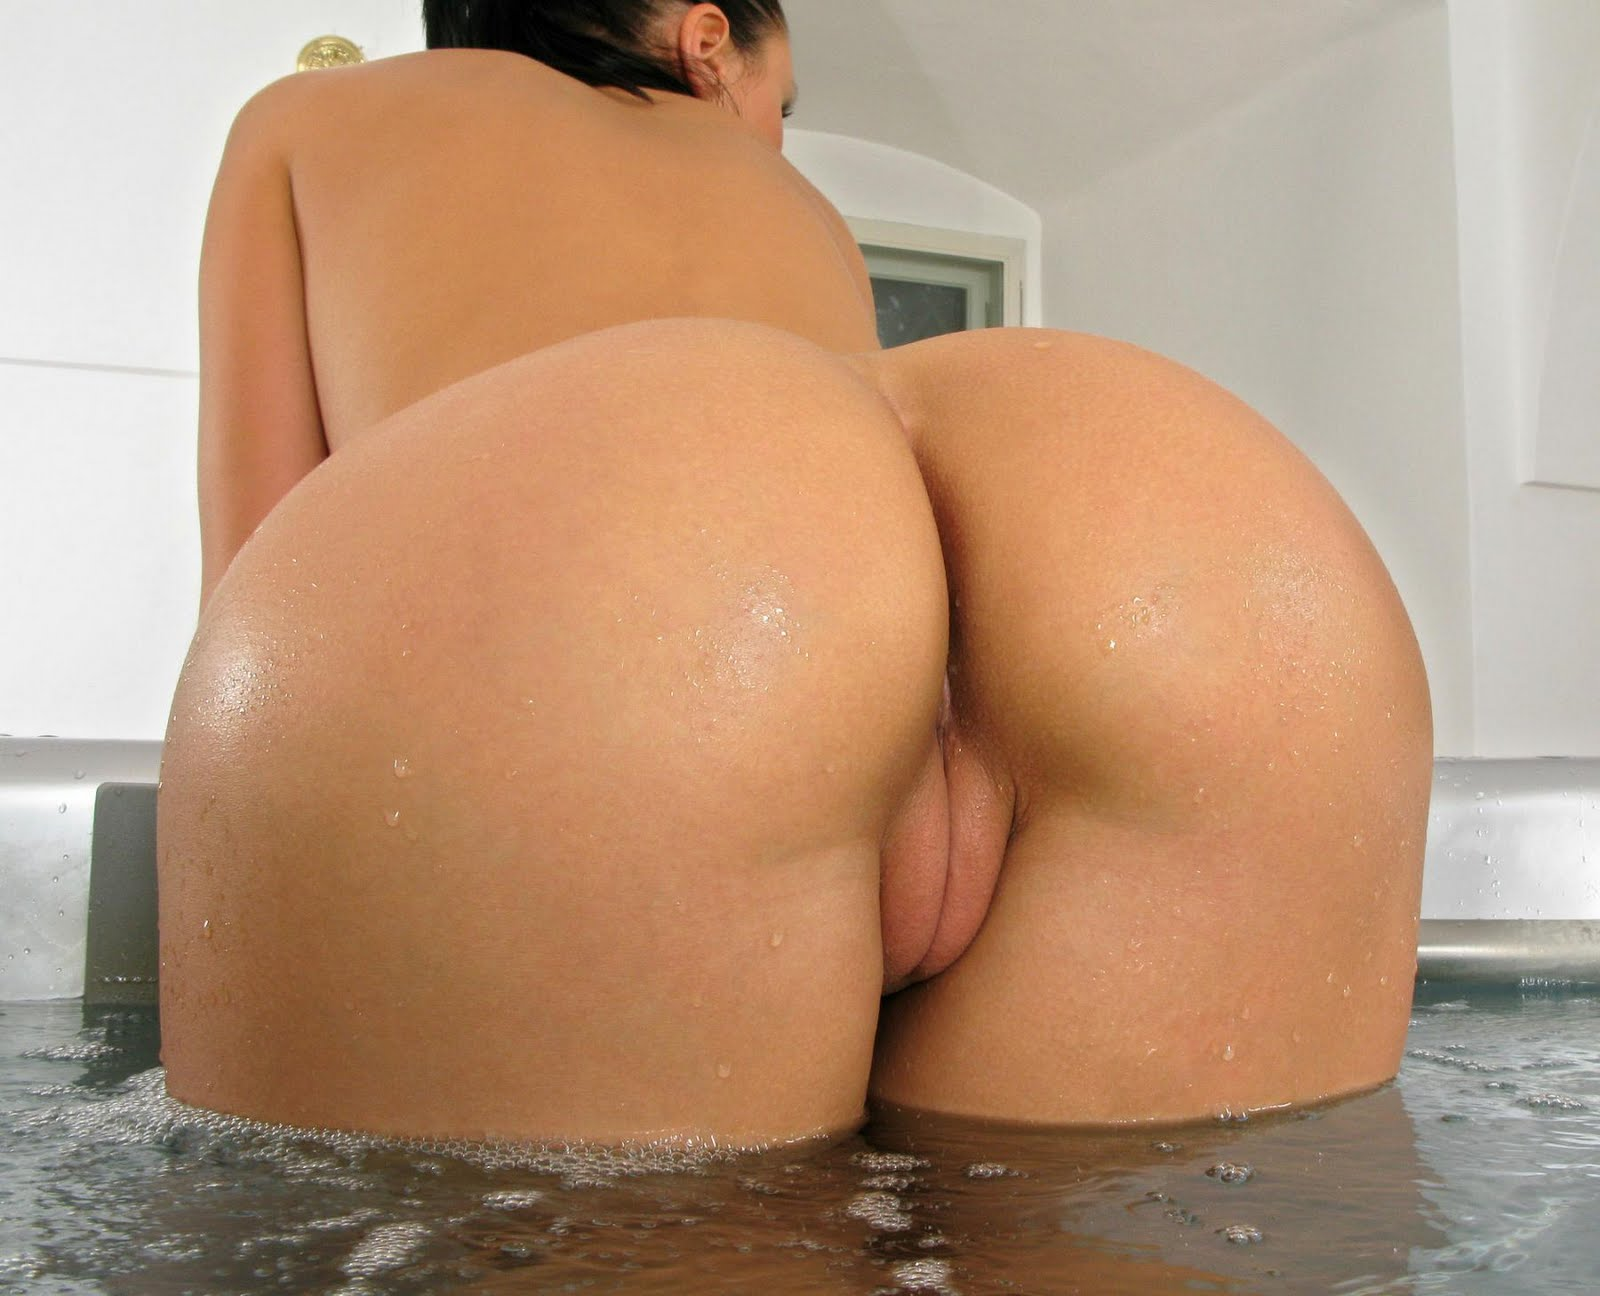 Bbw big booty bubble butts sexy pics can discussed